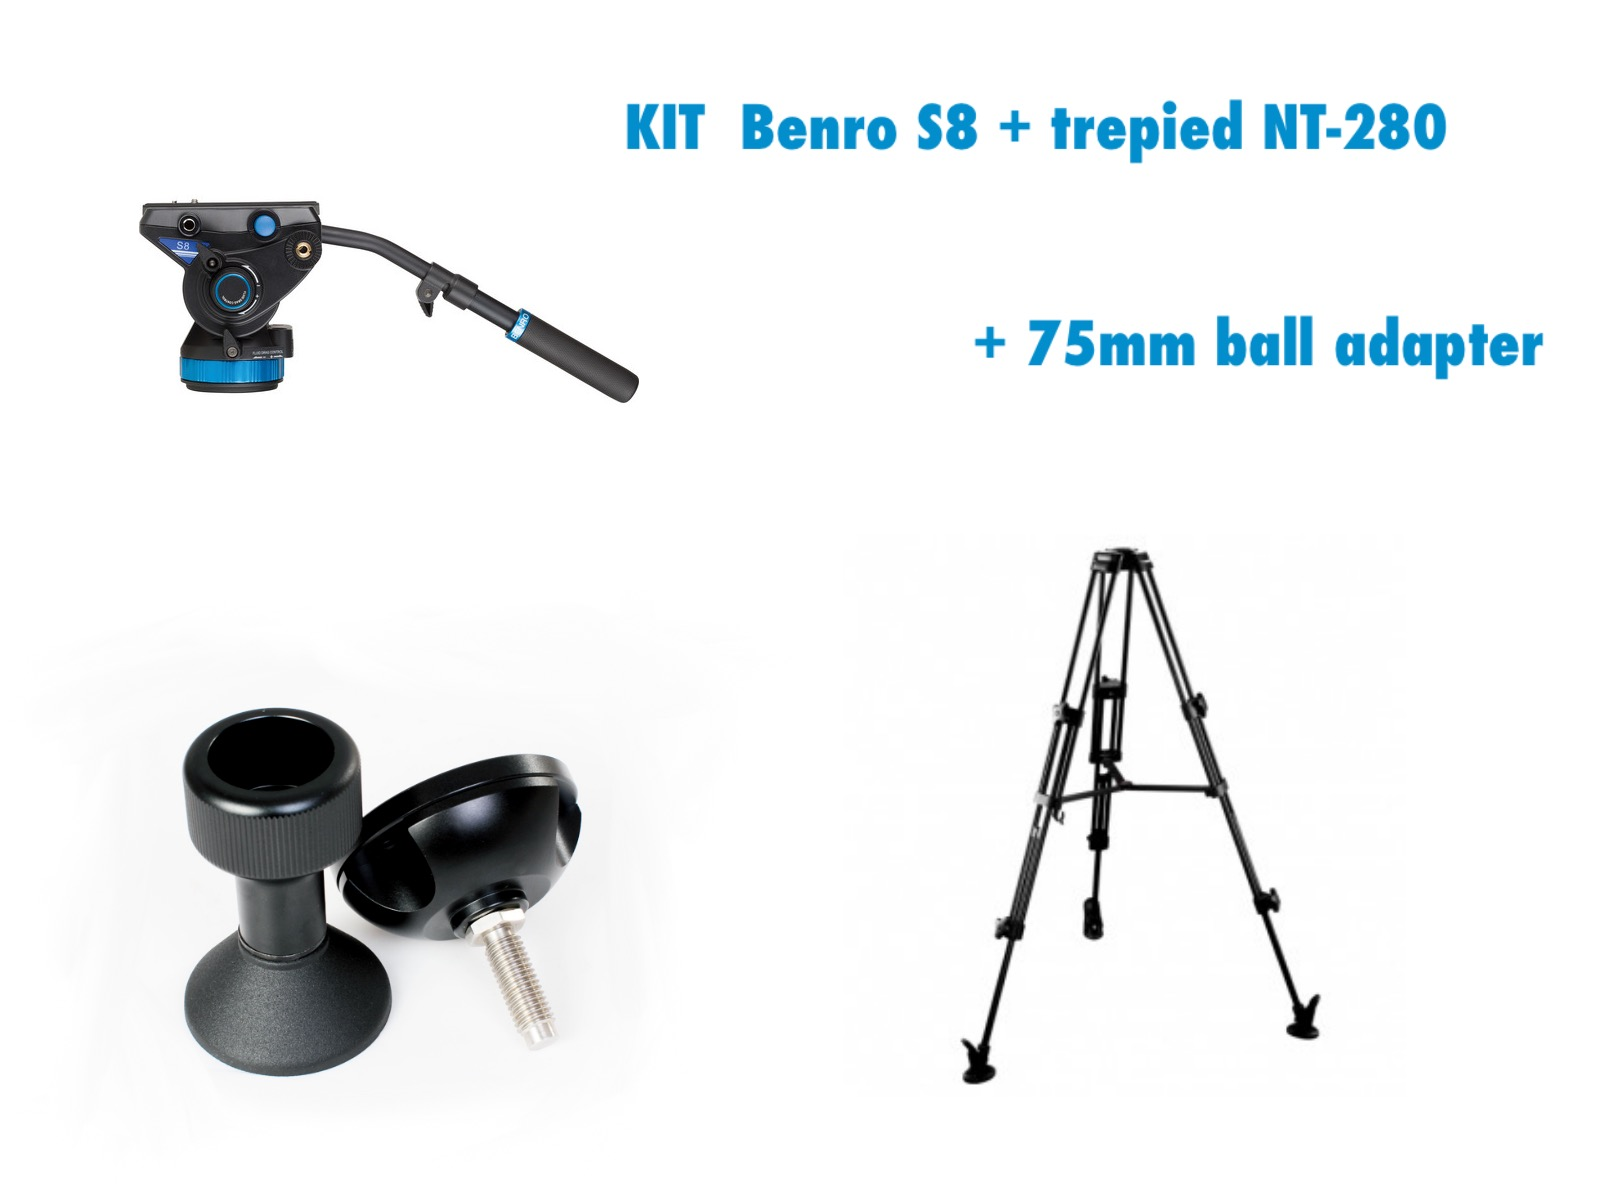 KIT BENRO S8 FLUID HEAD  + NT-280 VIDEO TRIPOD +  75mm Ball Adapter